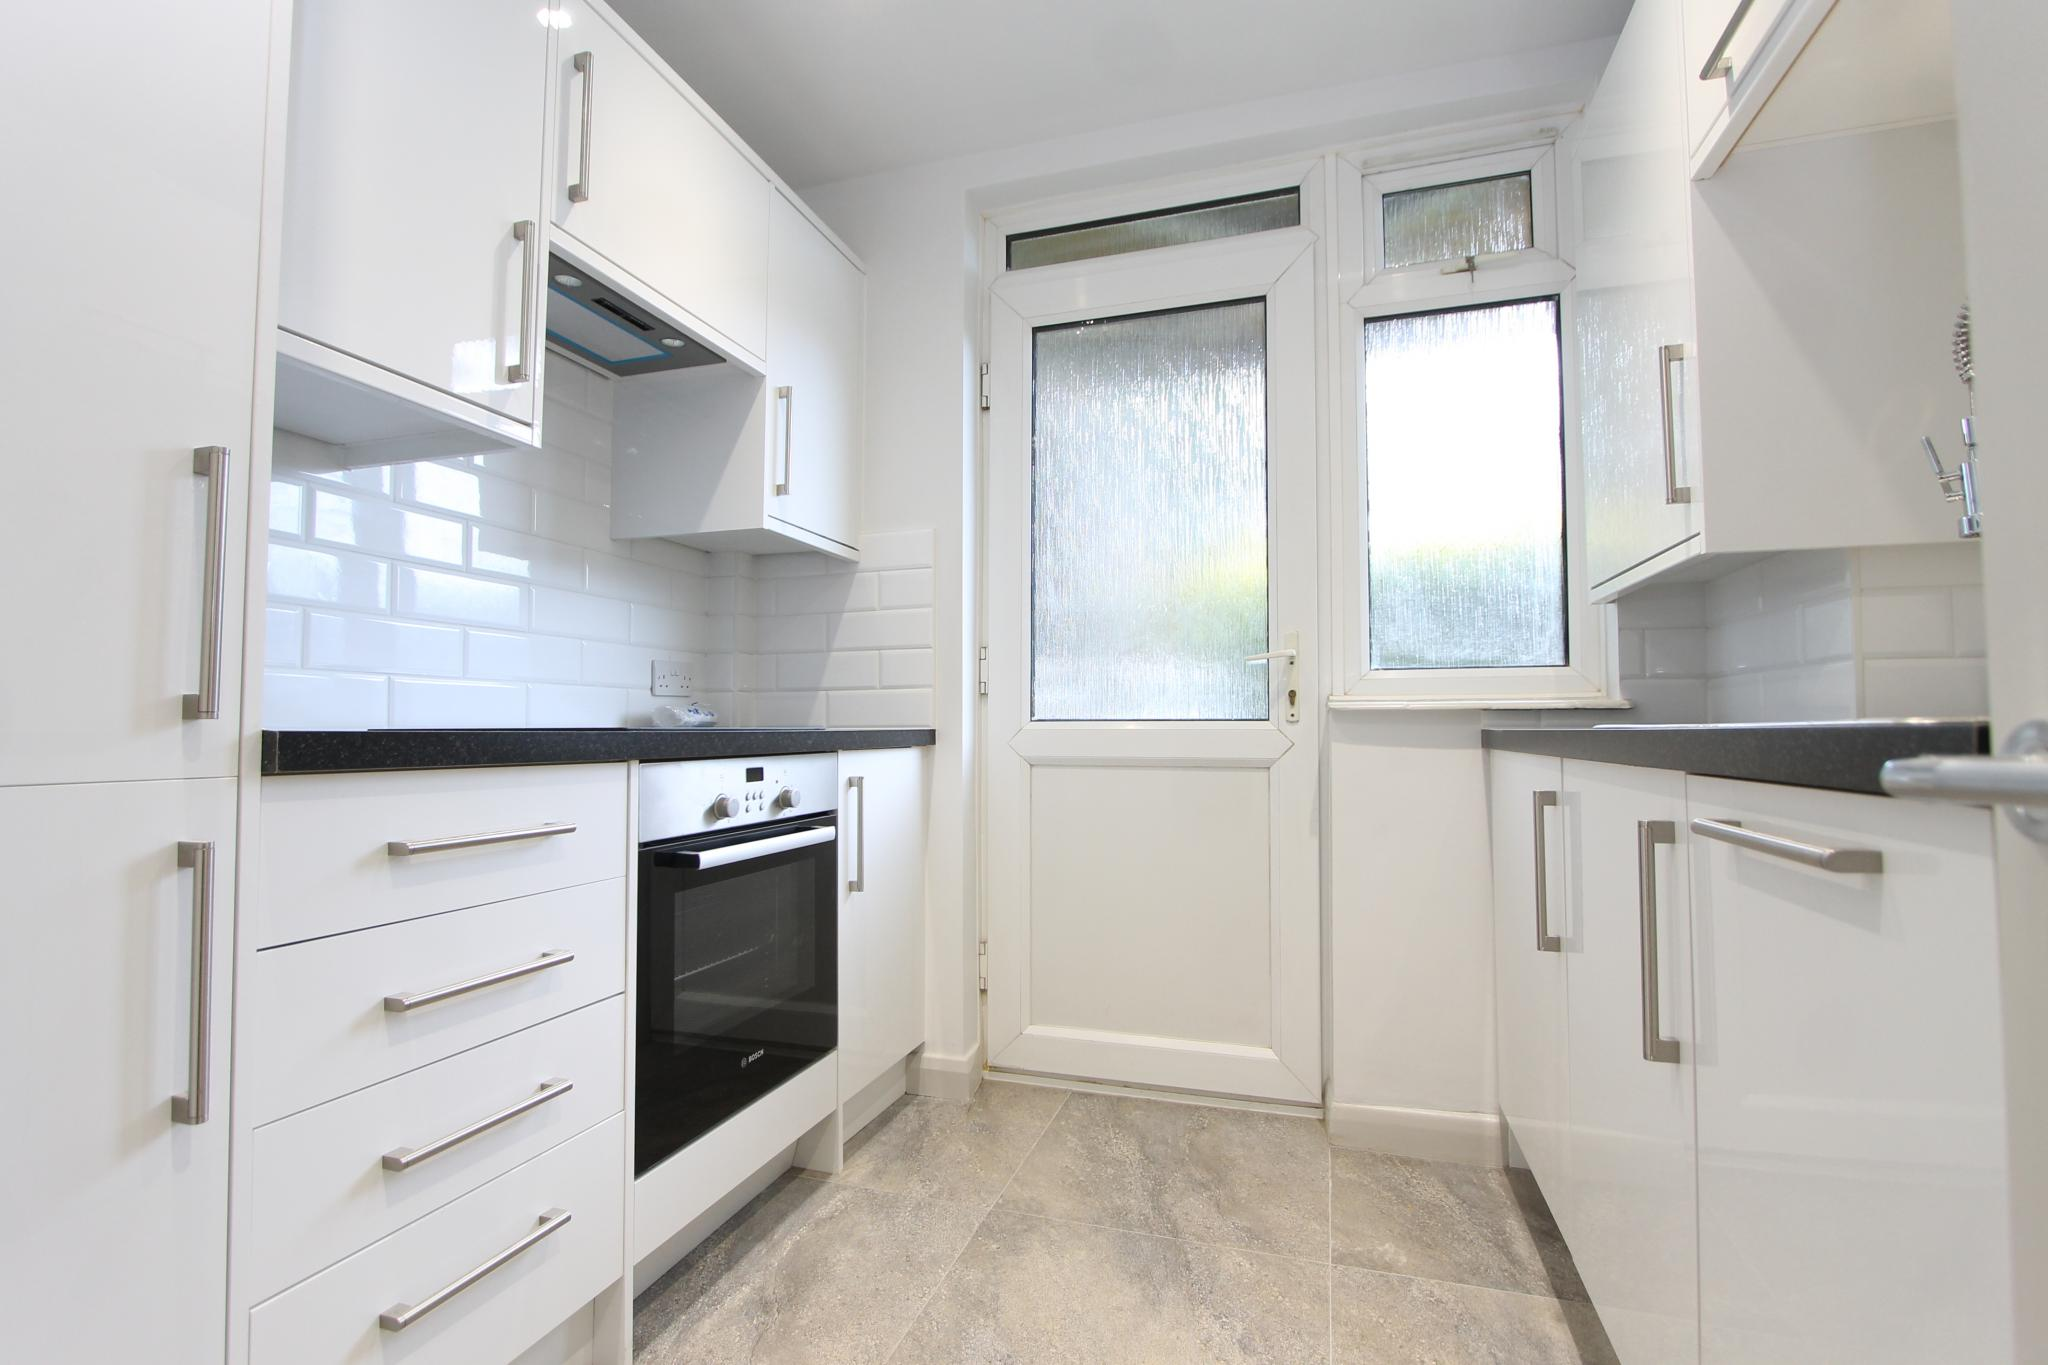 3 bedroom apartment flat/apartment Let Agreed in Worcester Park - Photograph 4.